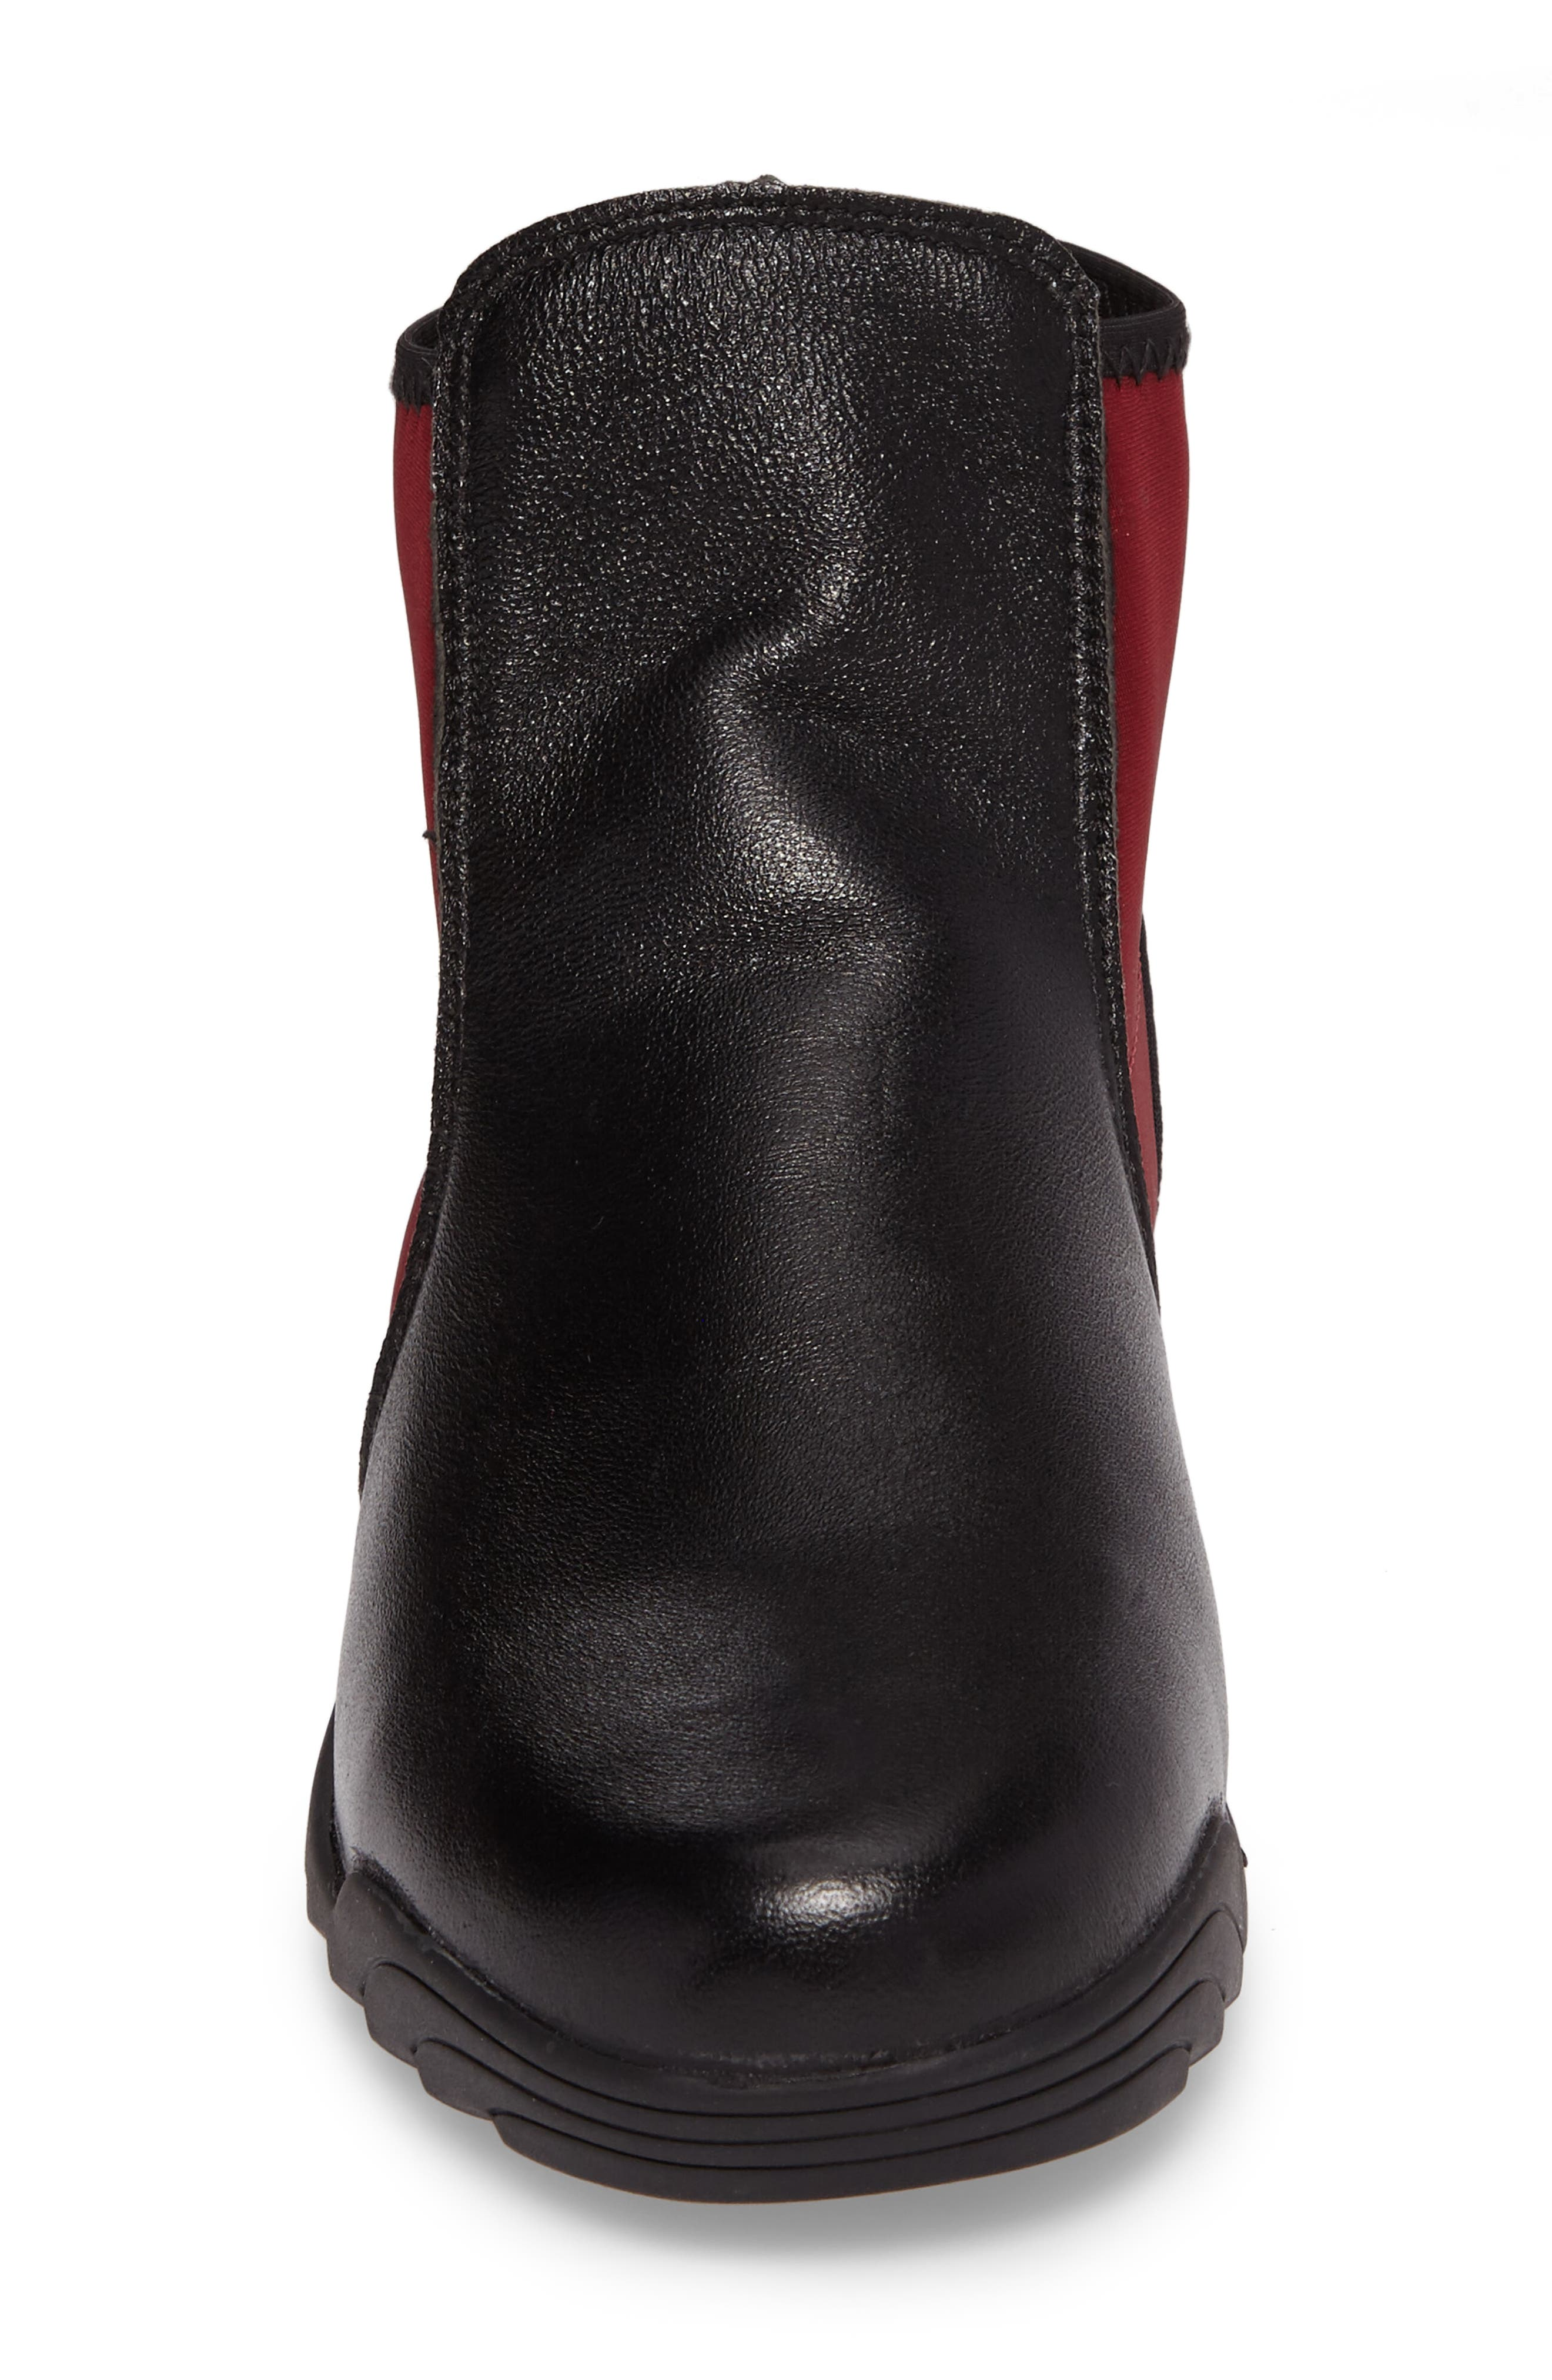 Rigged Force Sneaker,                             Alternate thumbnail 4, color,                             Burgundy Leather